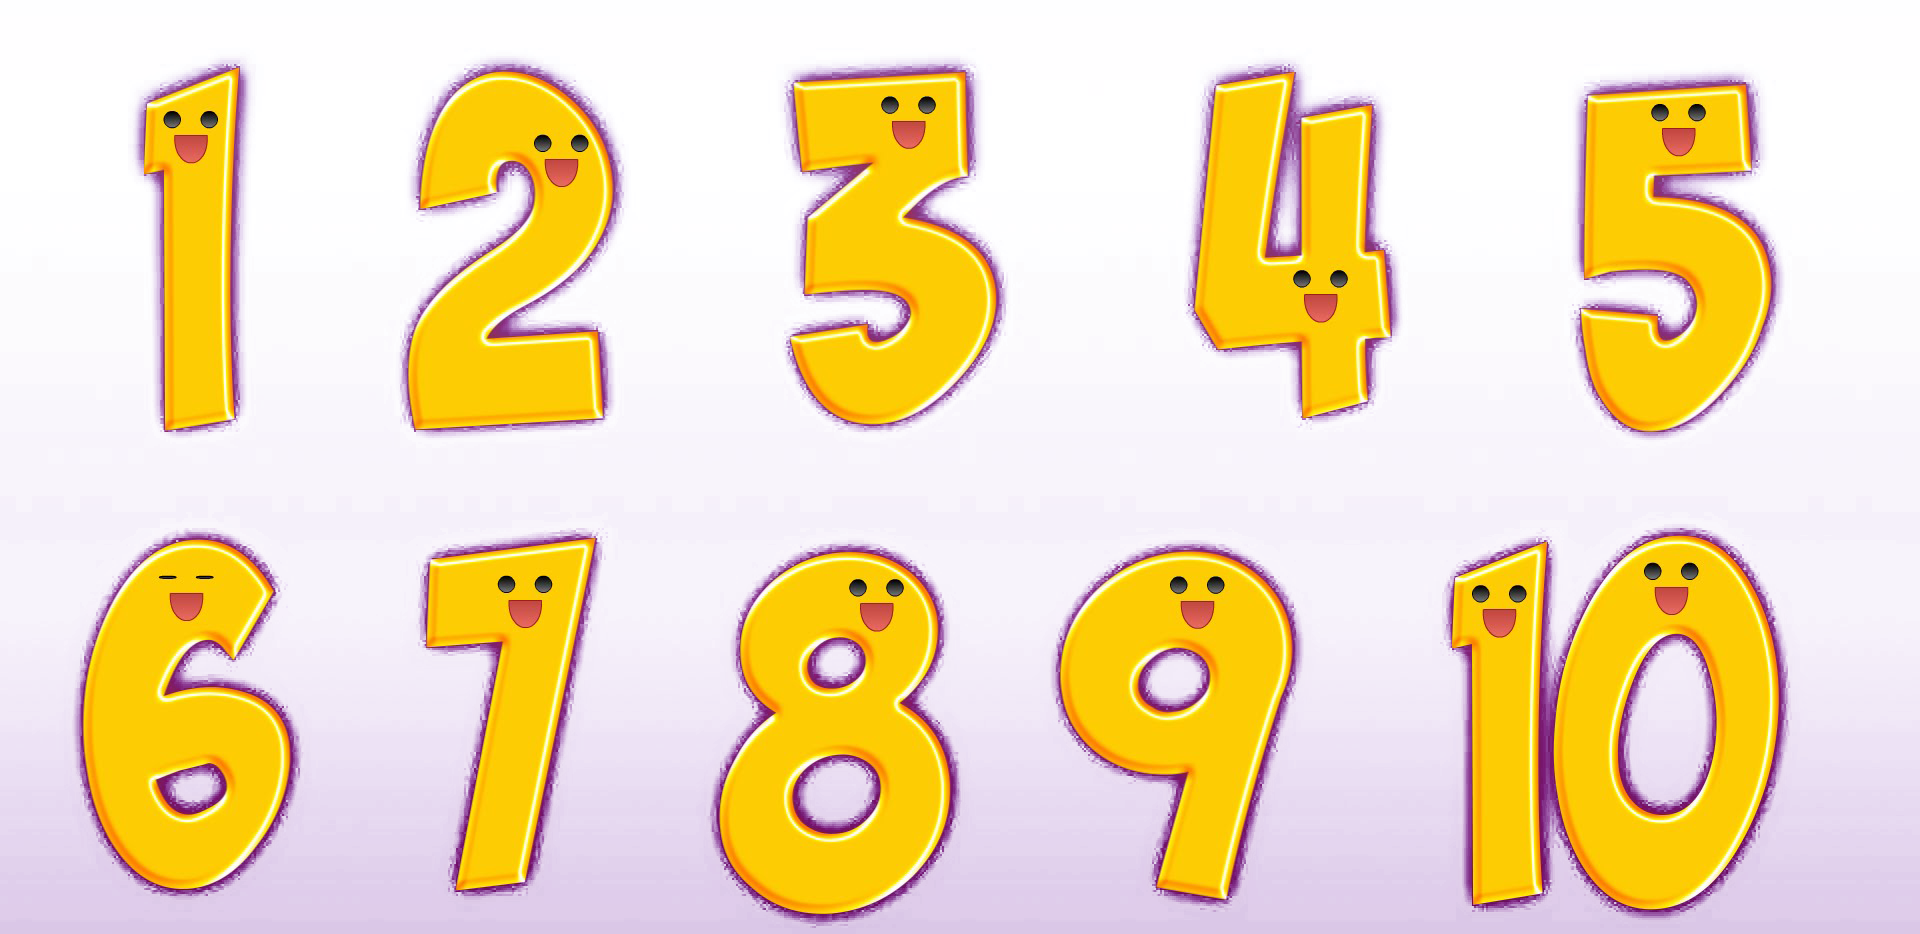 Numbers clipart 1 5 svg library download 1 to 10 Numbers PNG Transparent Images | PNG All svg library download